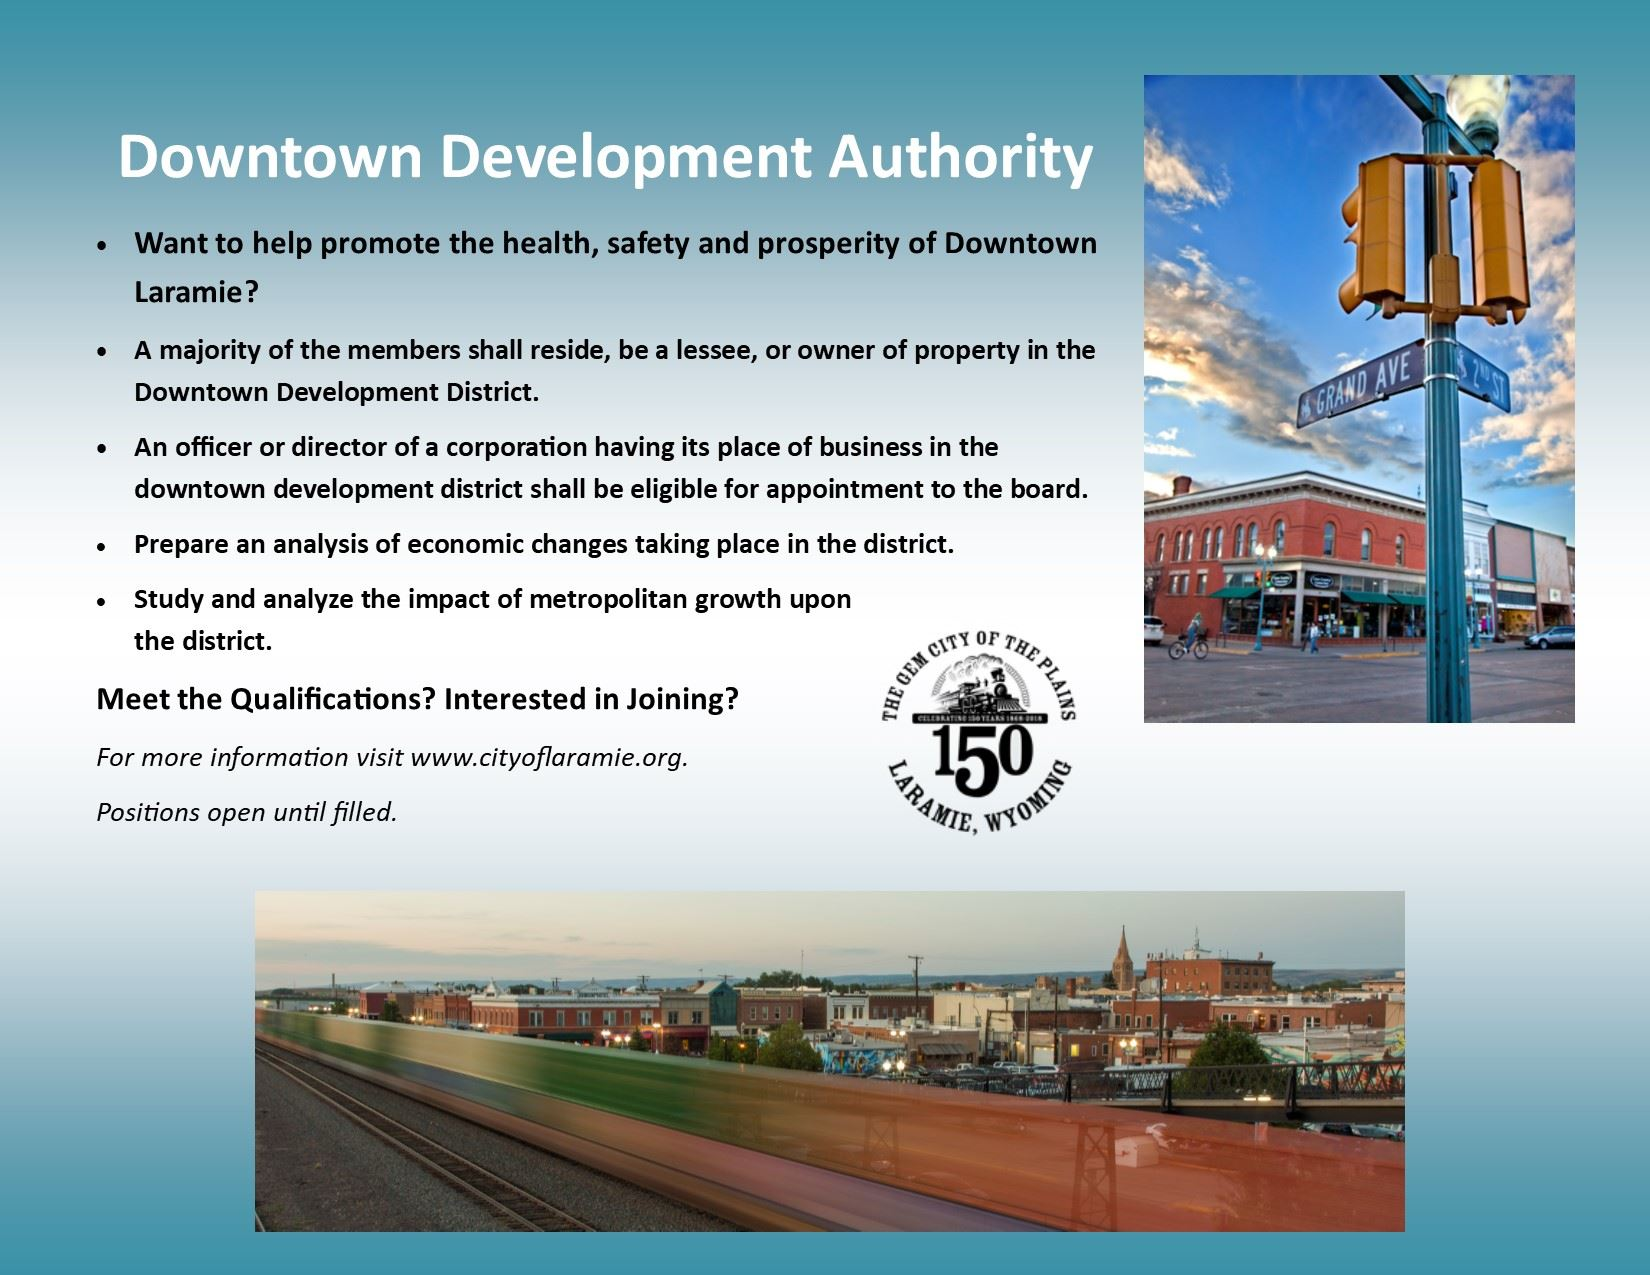 Downtown Development Authority 11-13-18